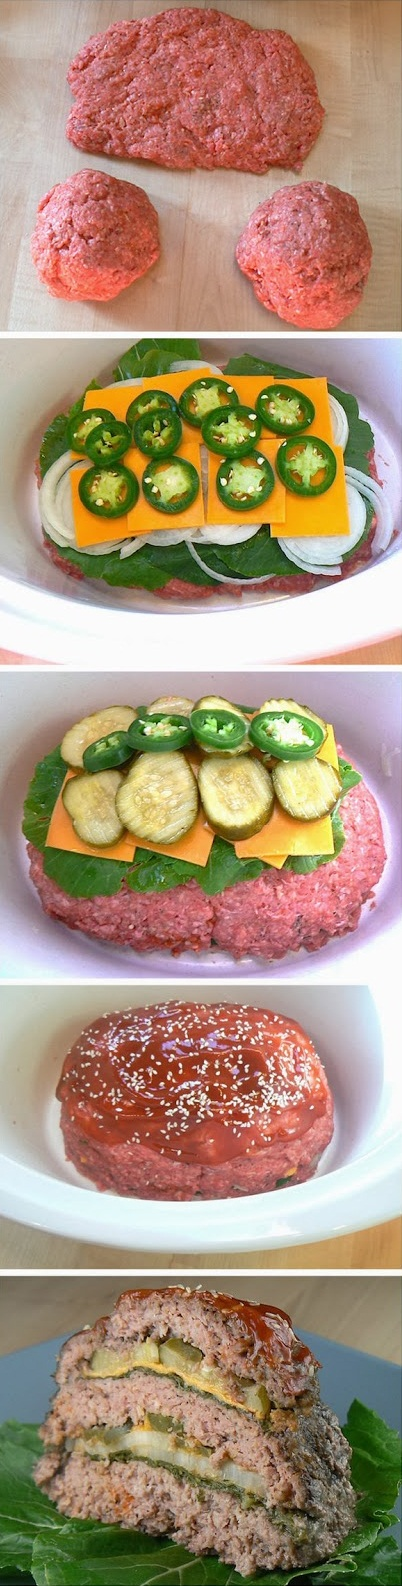 Cheeseburger-Slow-Cooker-Meatloaf